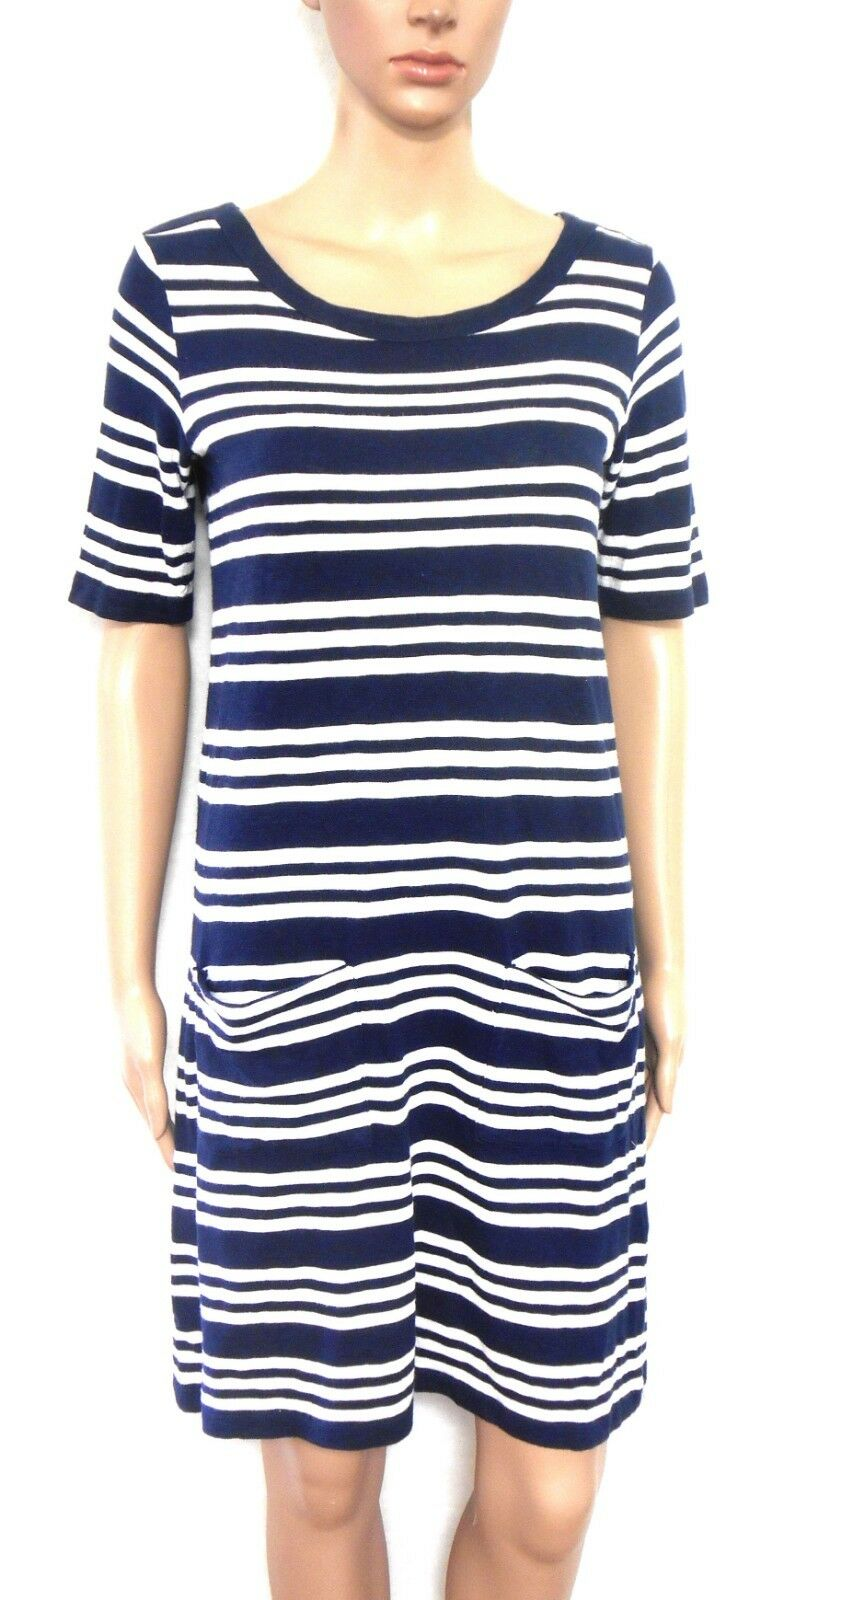 Marcs nautical striped cotton dress, dark blue/white, sz. 10 - with pockets, exc. cnd.